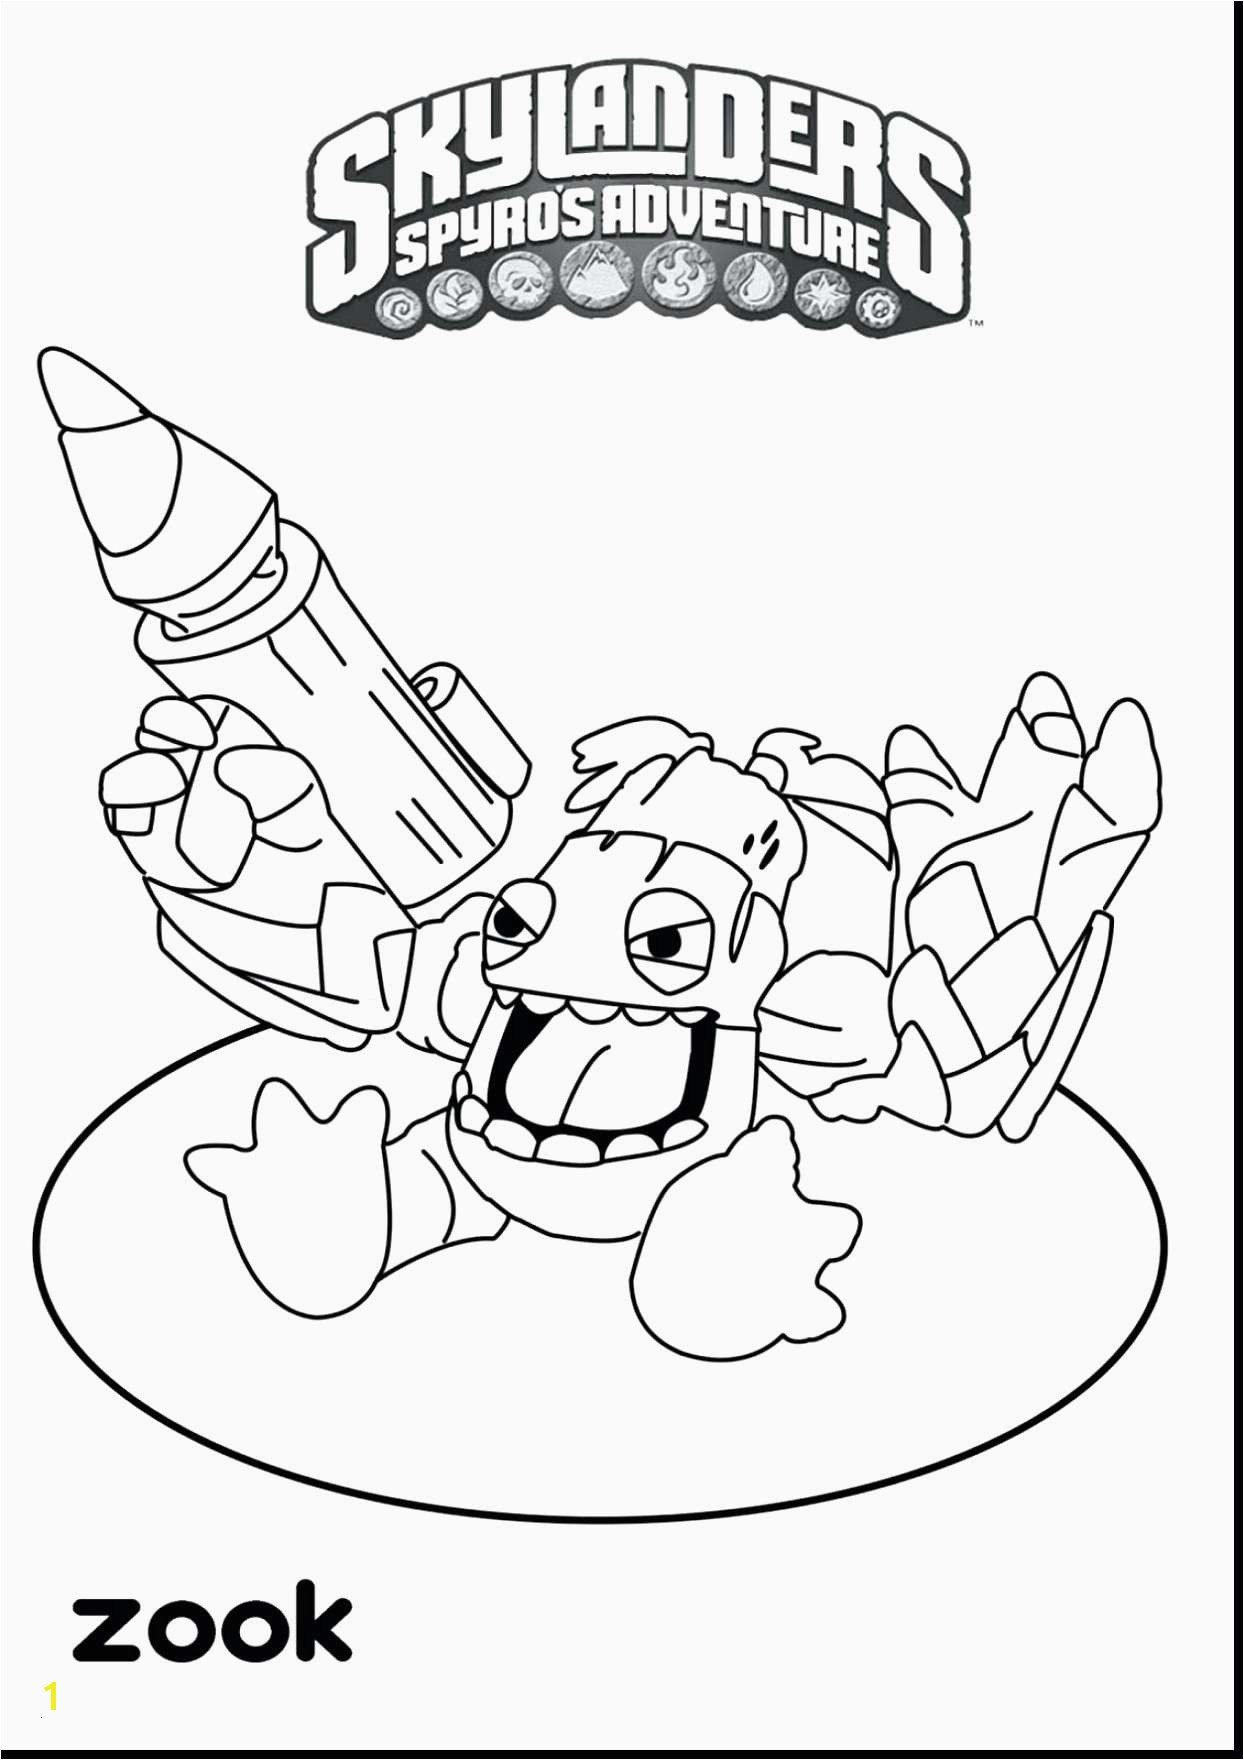 Football Teams Coloring Pages